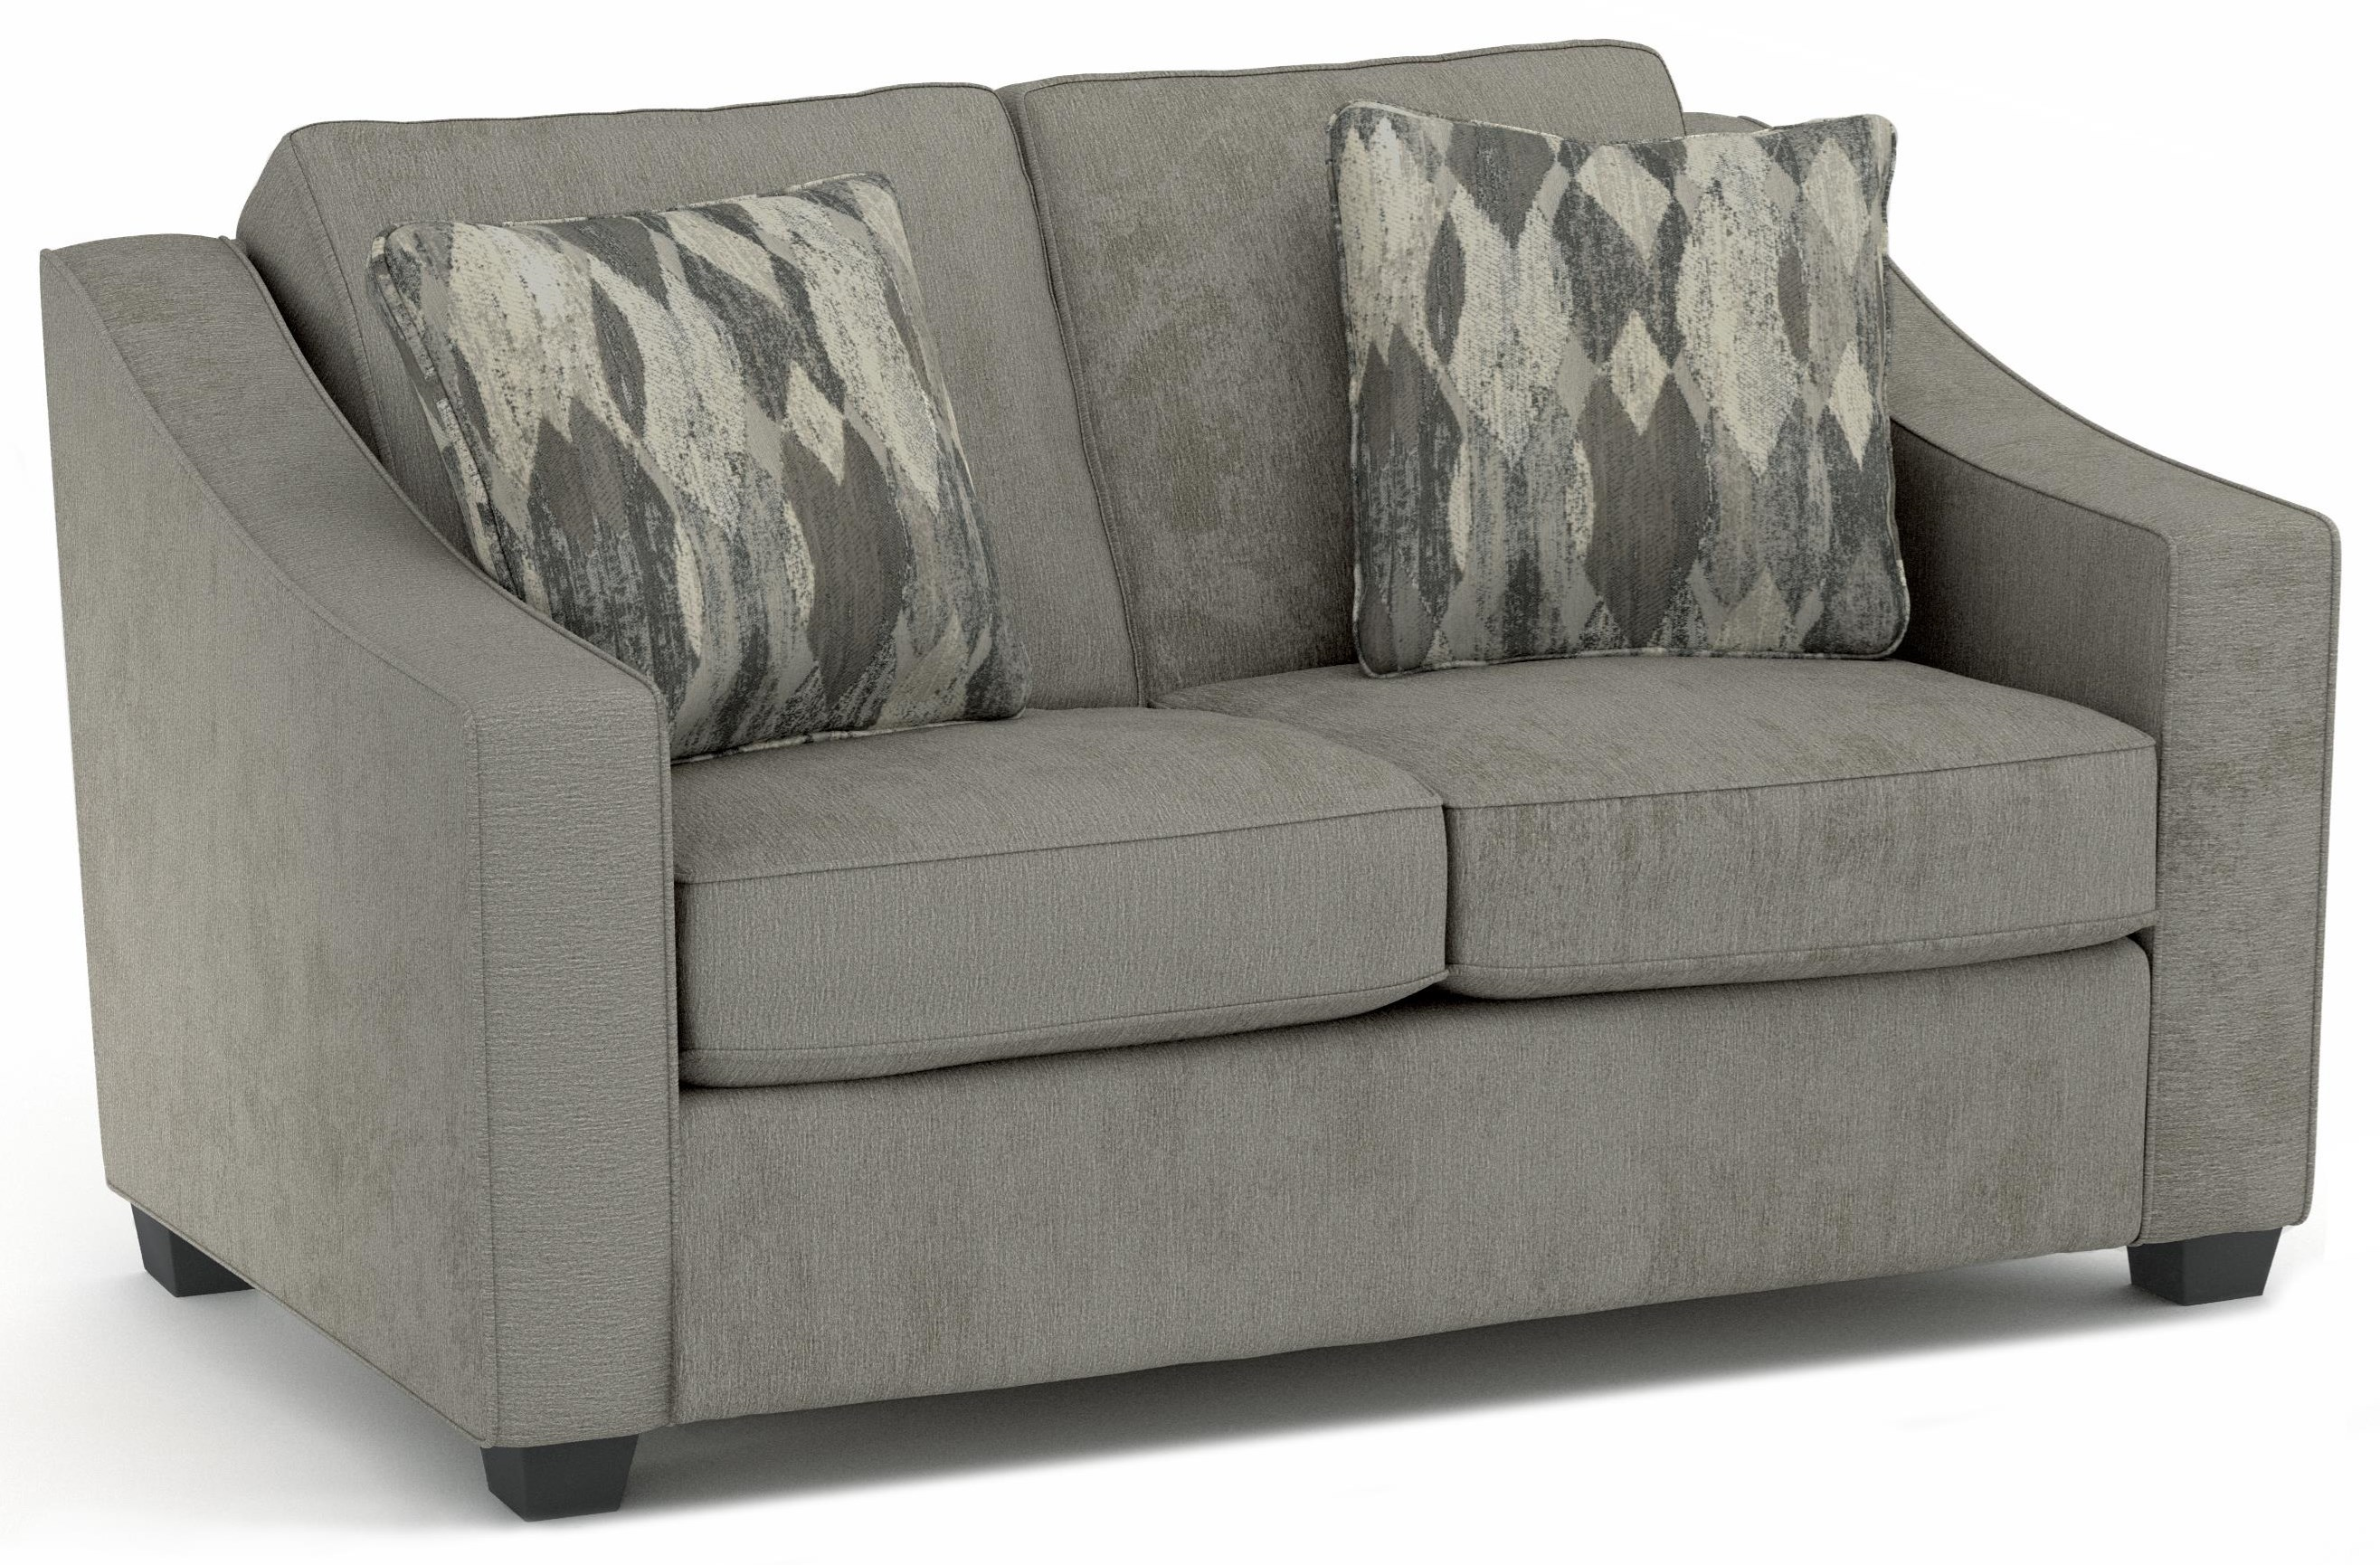 Carlton Loveseat by Sunset Home at Walker's Furniture